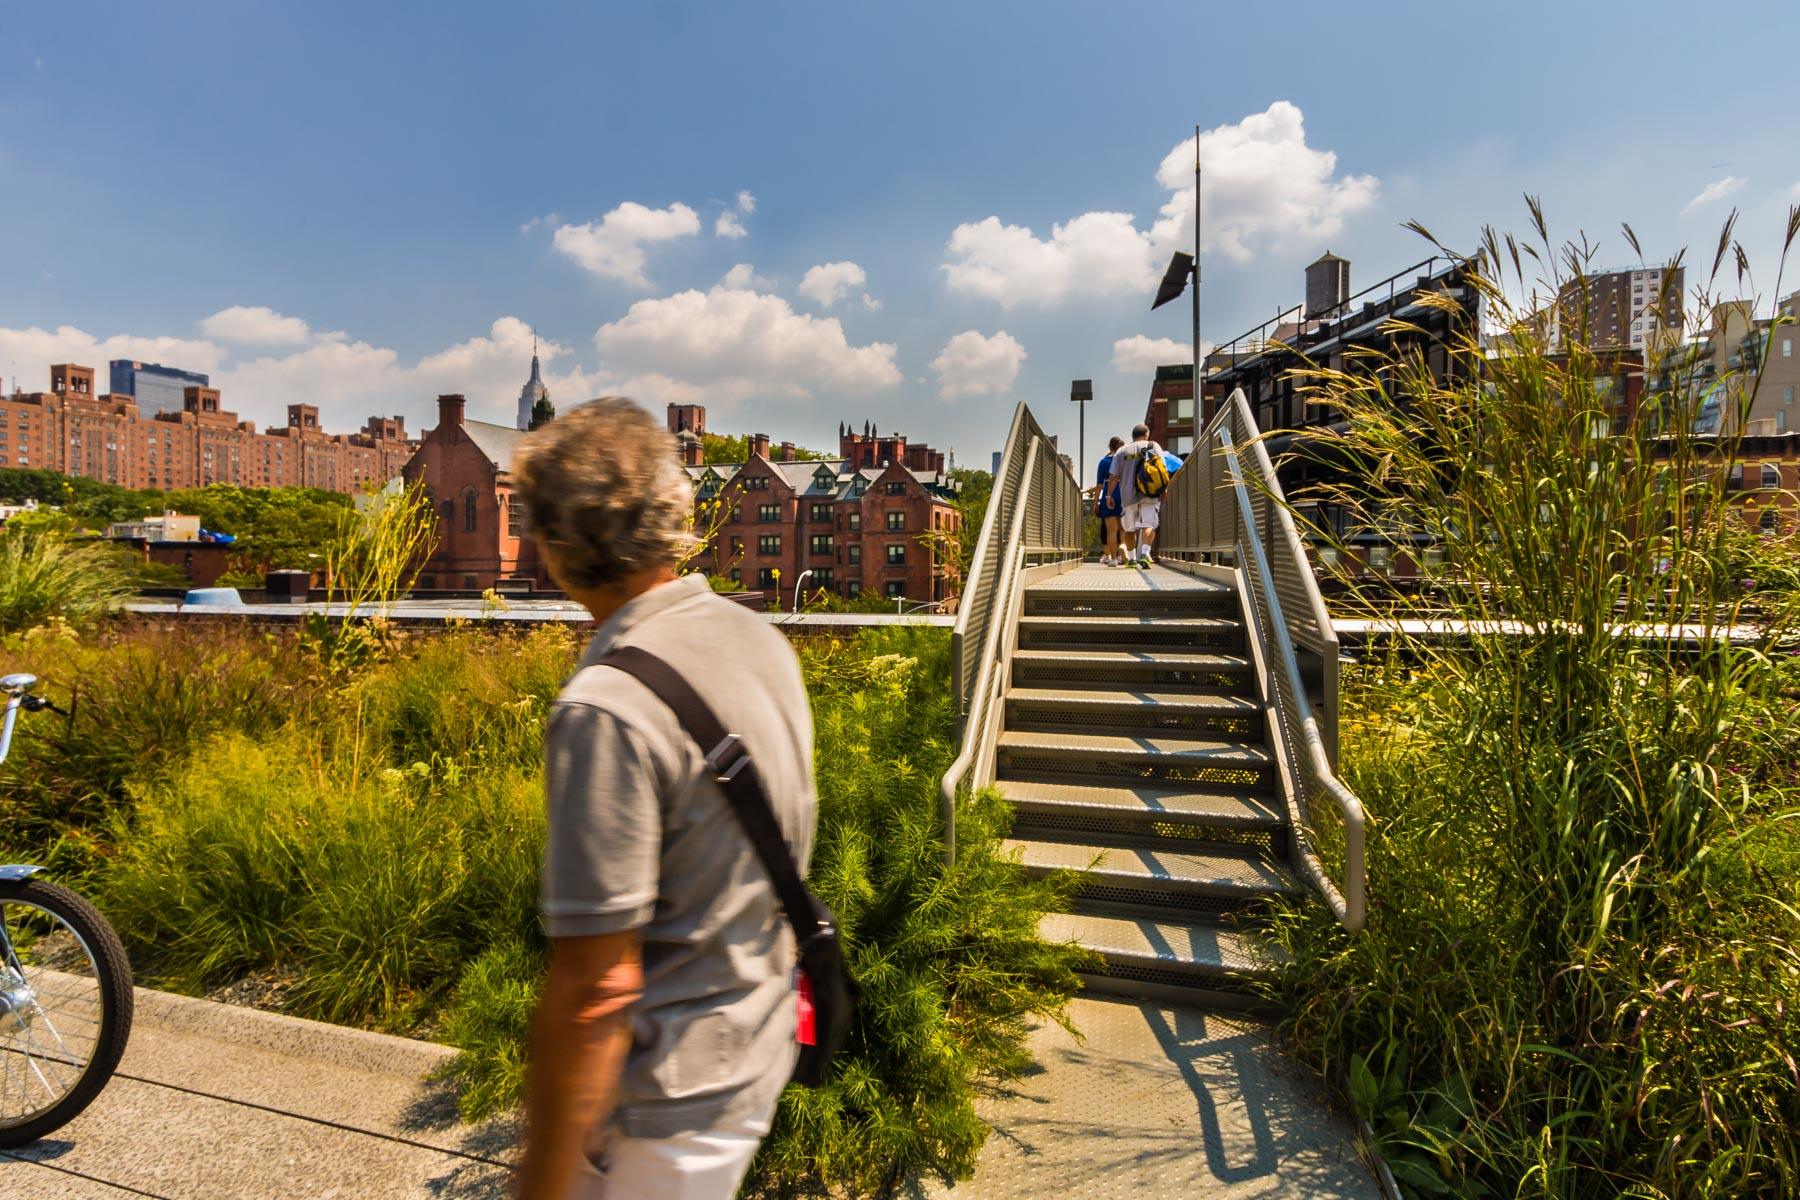 highline_nyc_201208-13